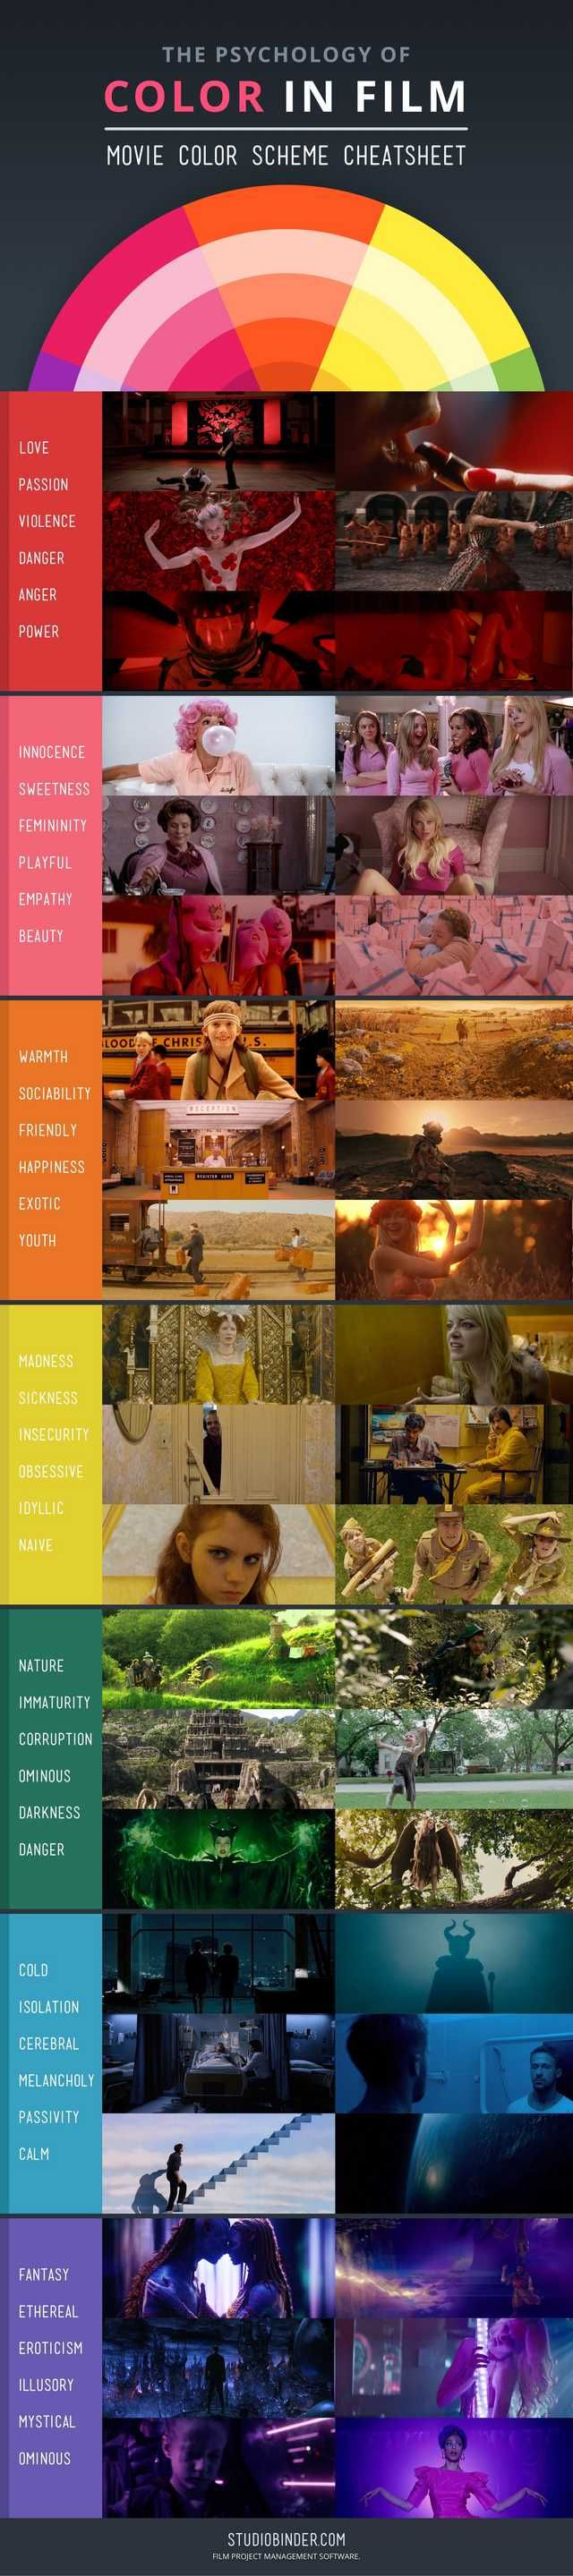 The Psychology of Color in Film - Imgur